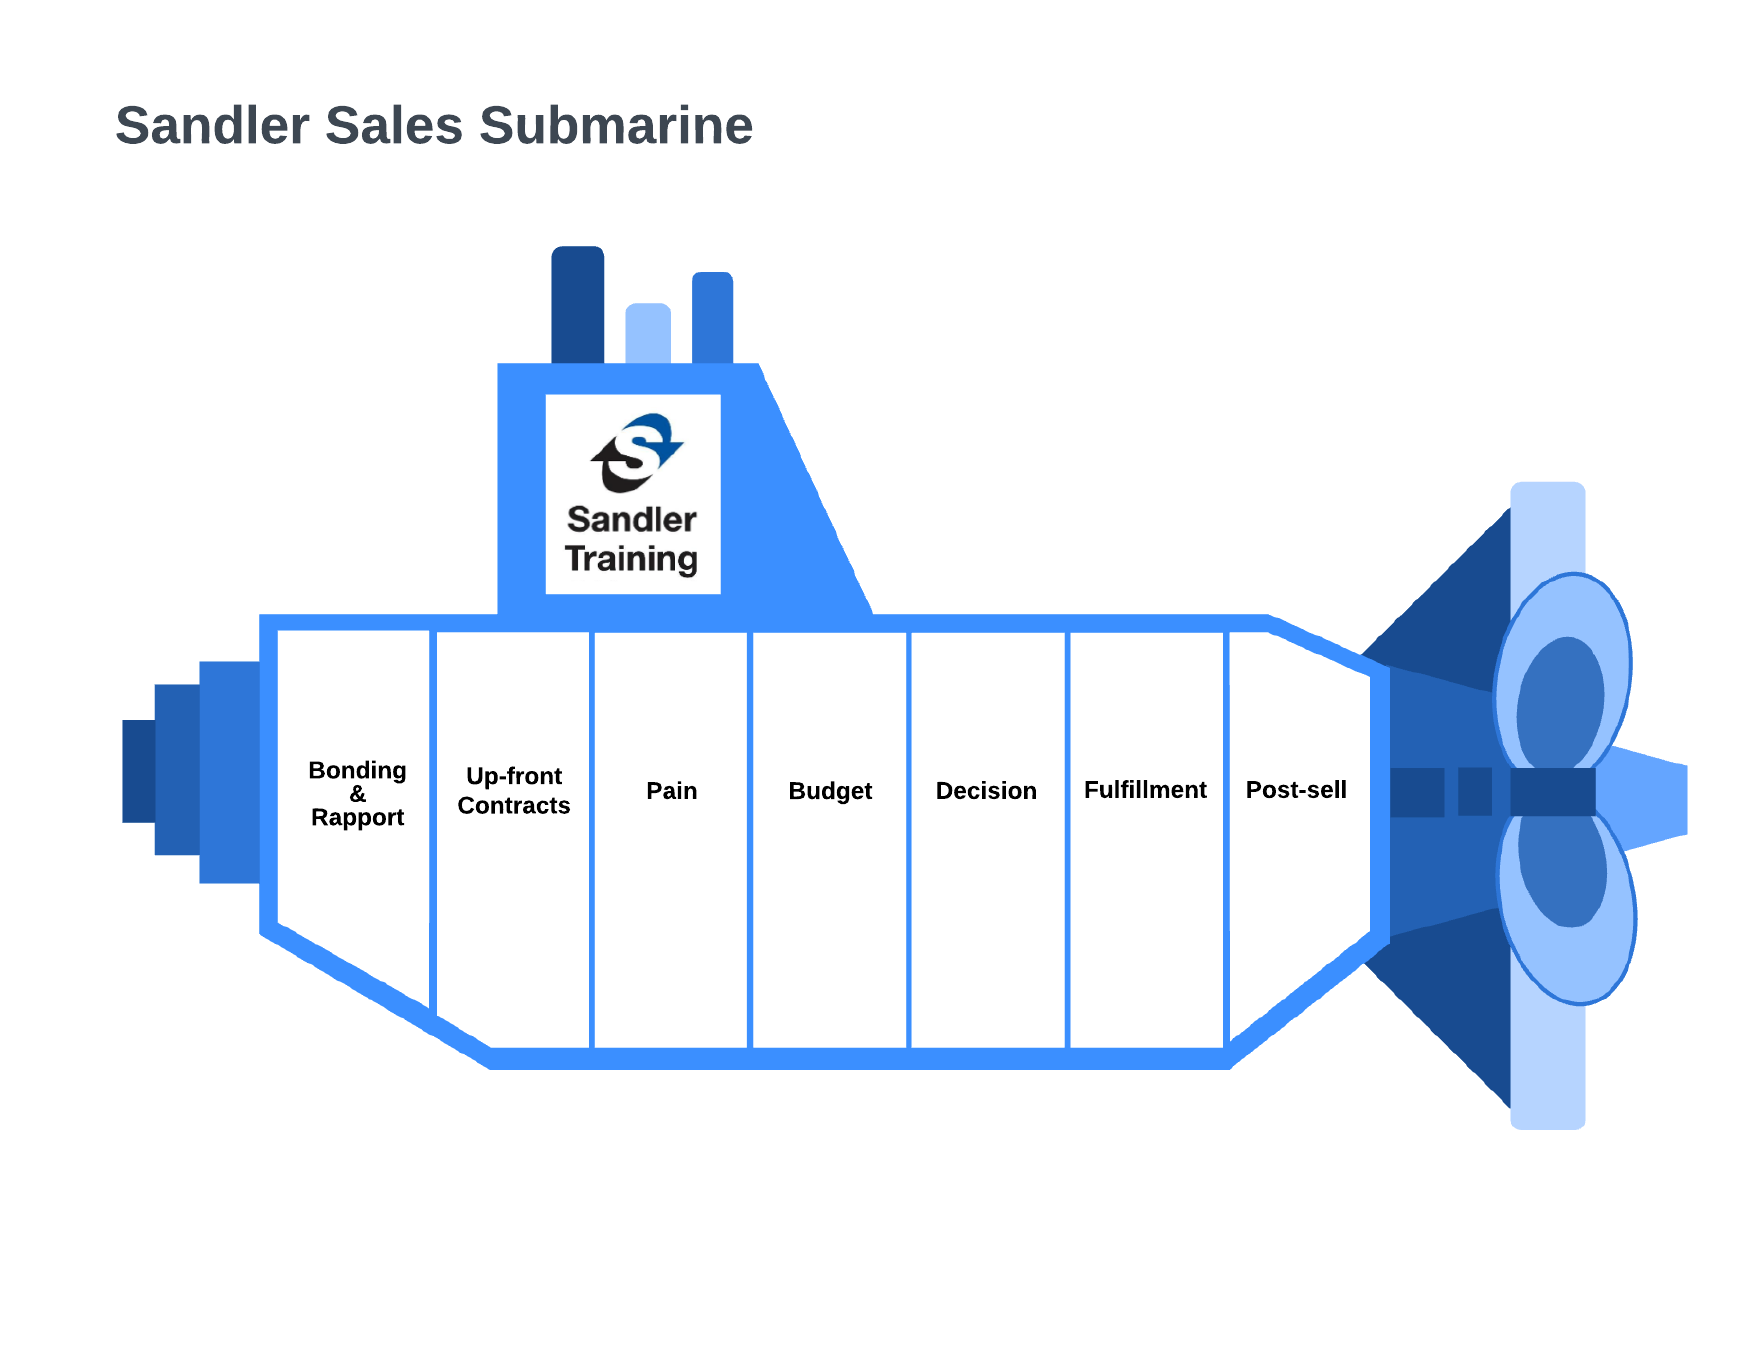 Sandler sales submarine